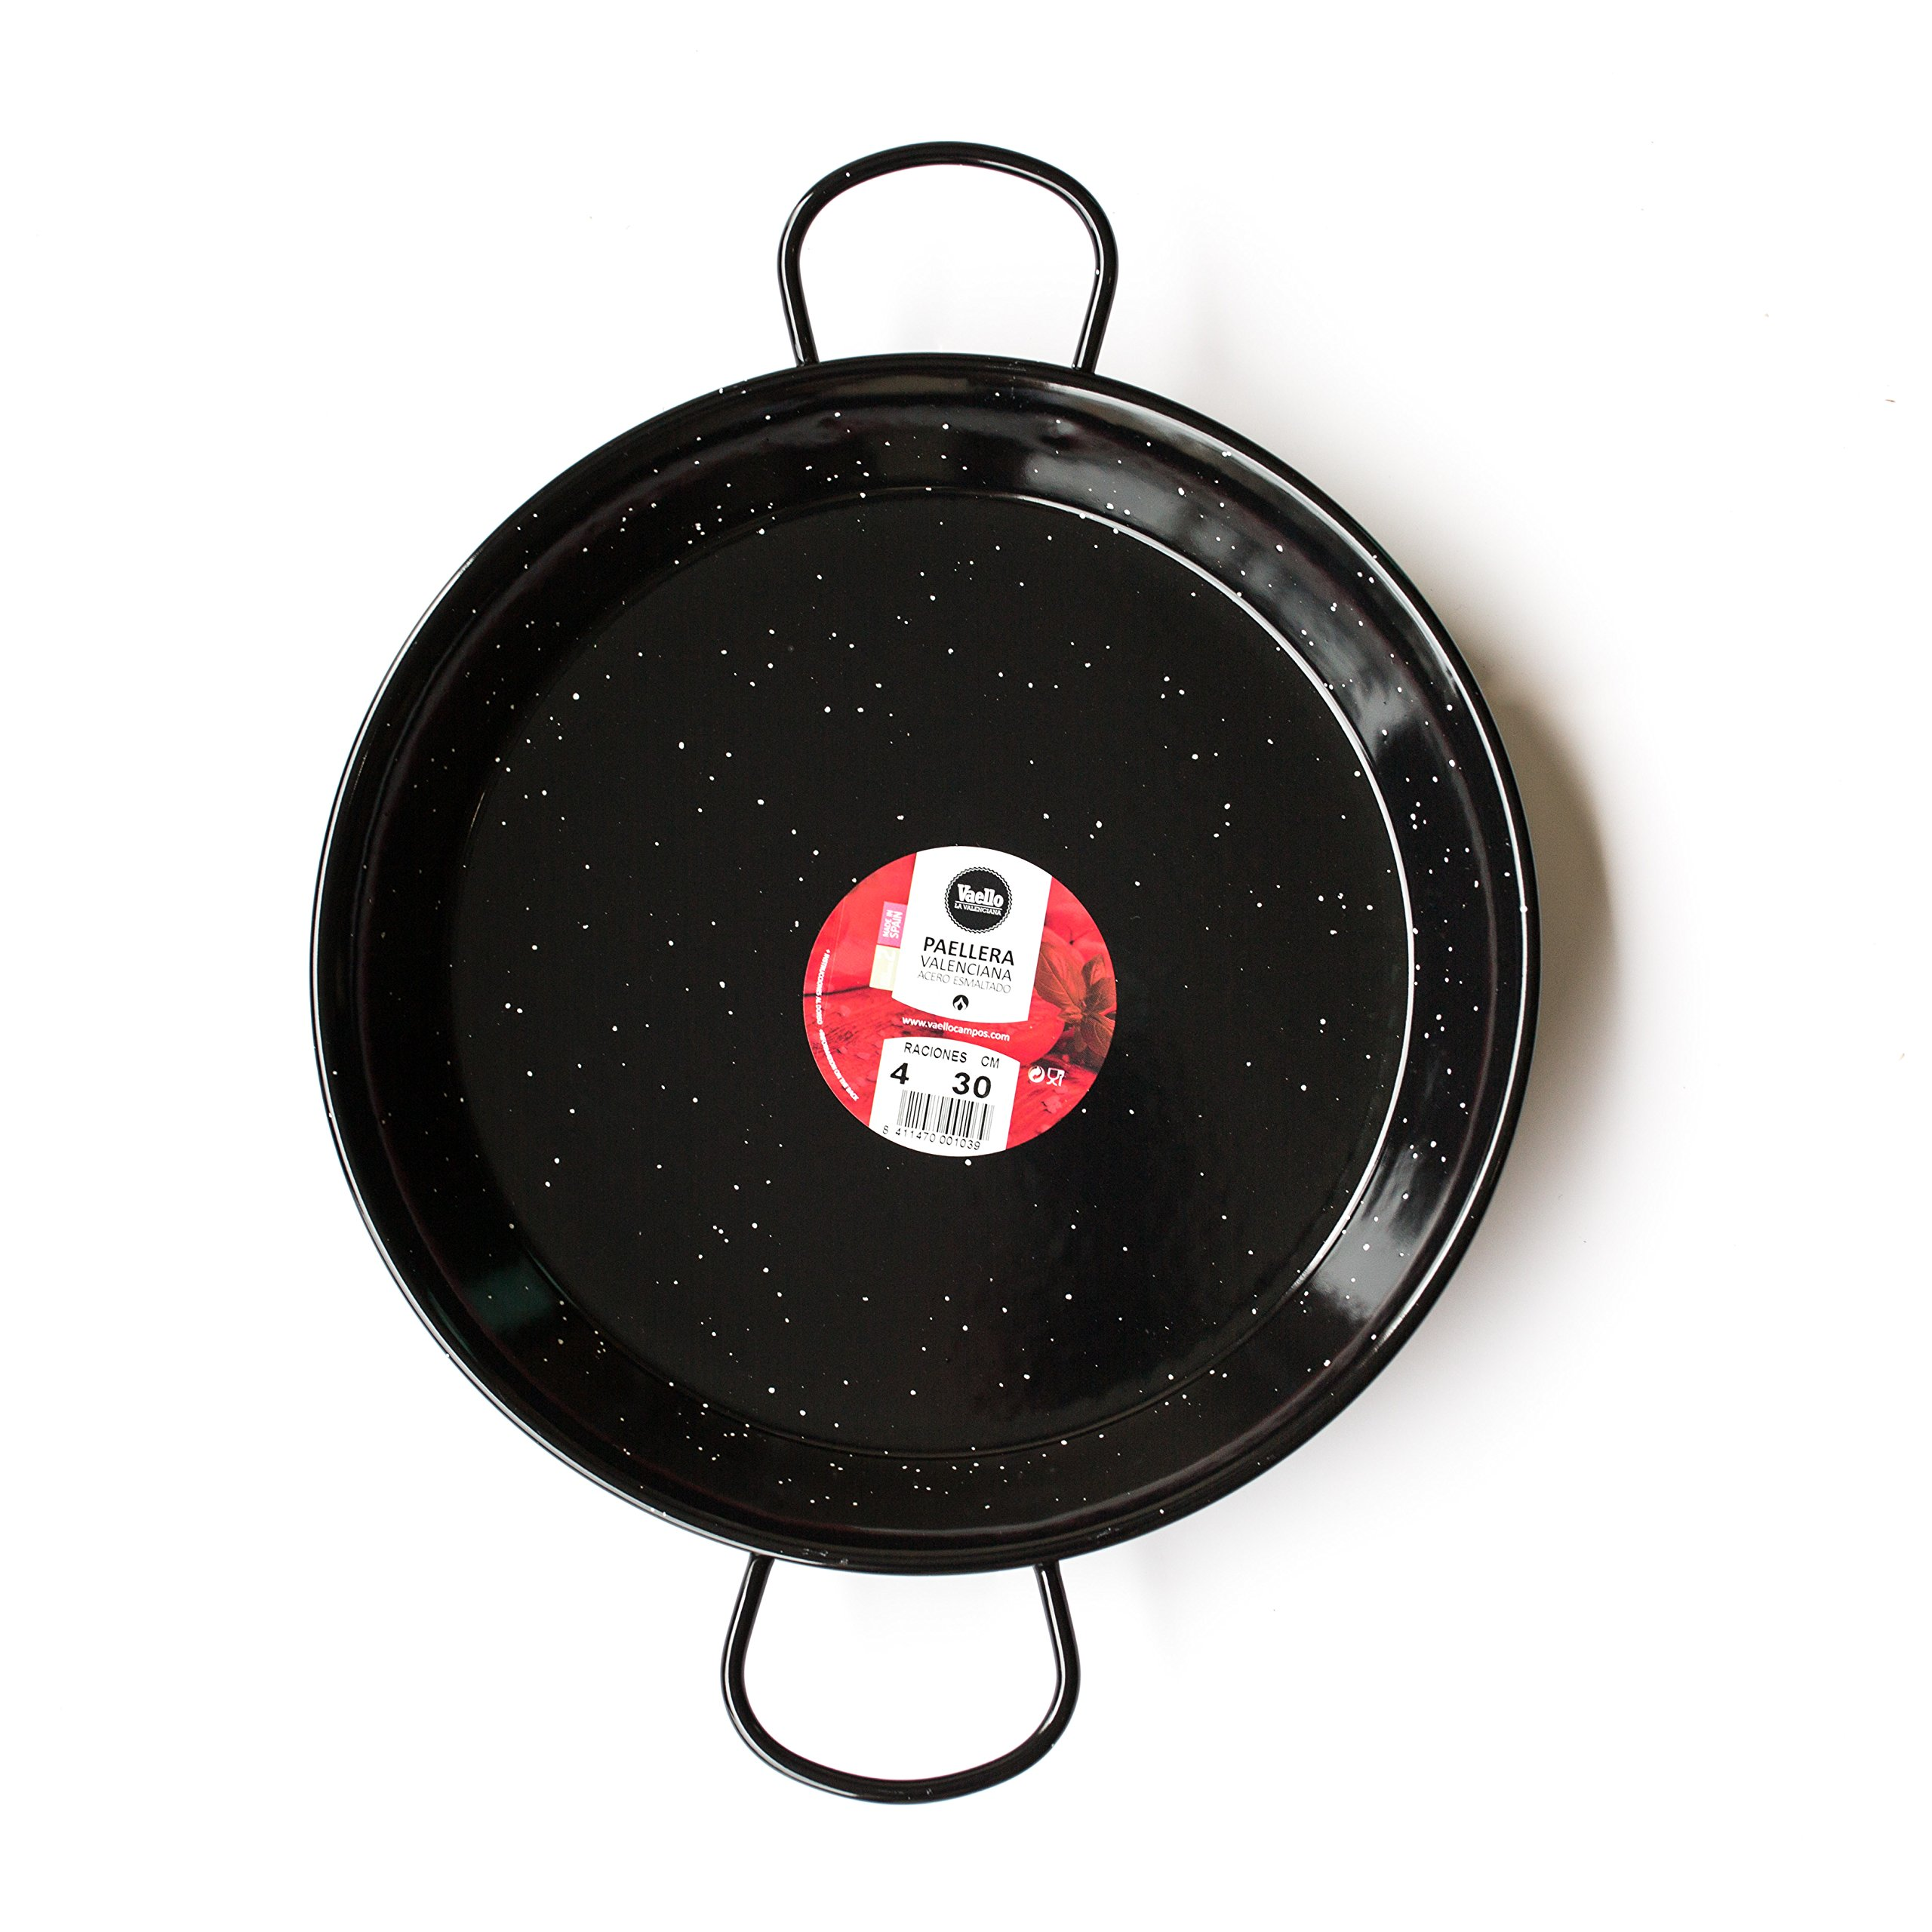 Enamelled Steel Valencian paella pan 12Inch / 30cm / 4 Servings